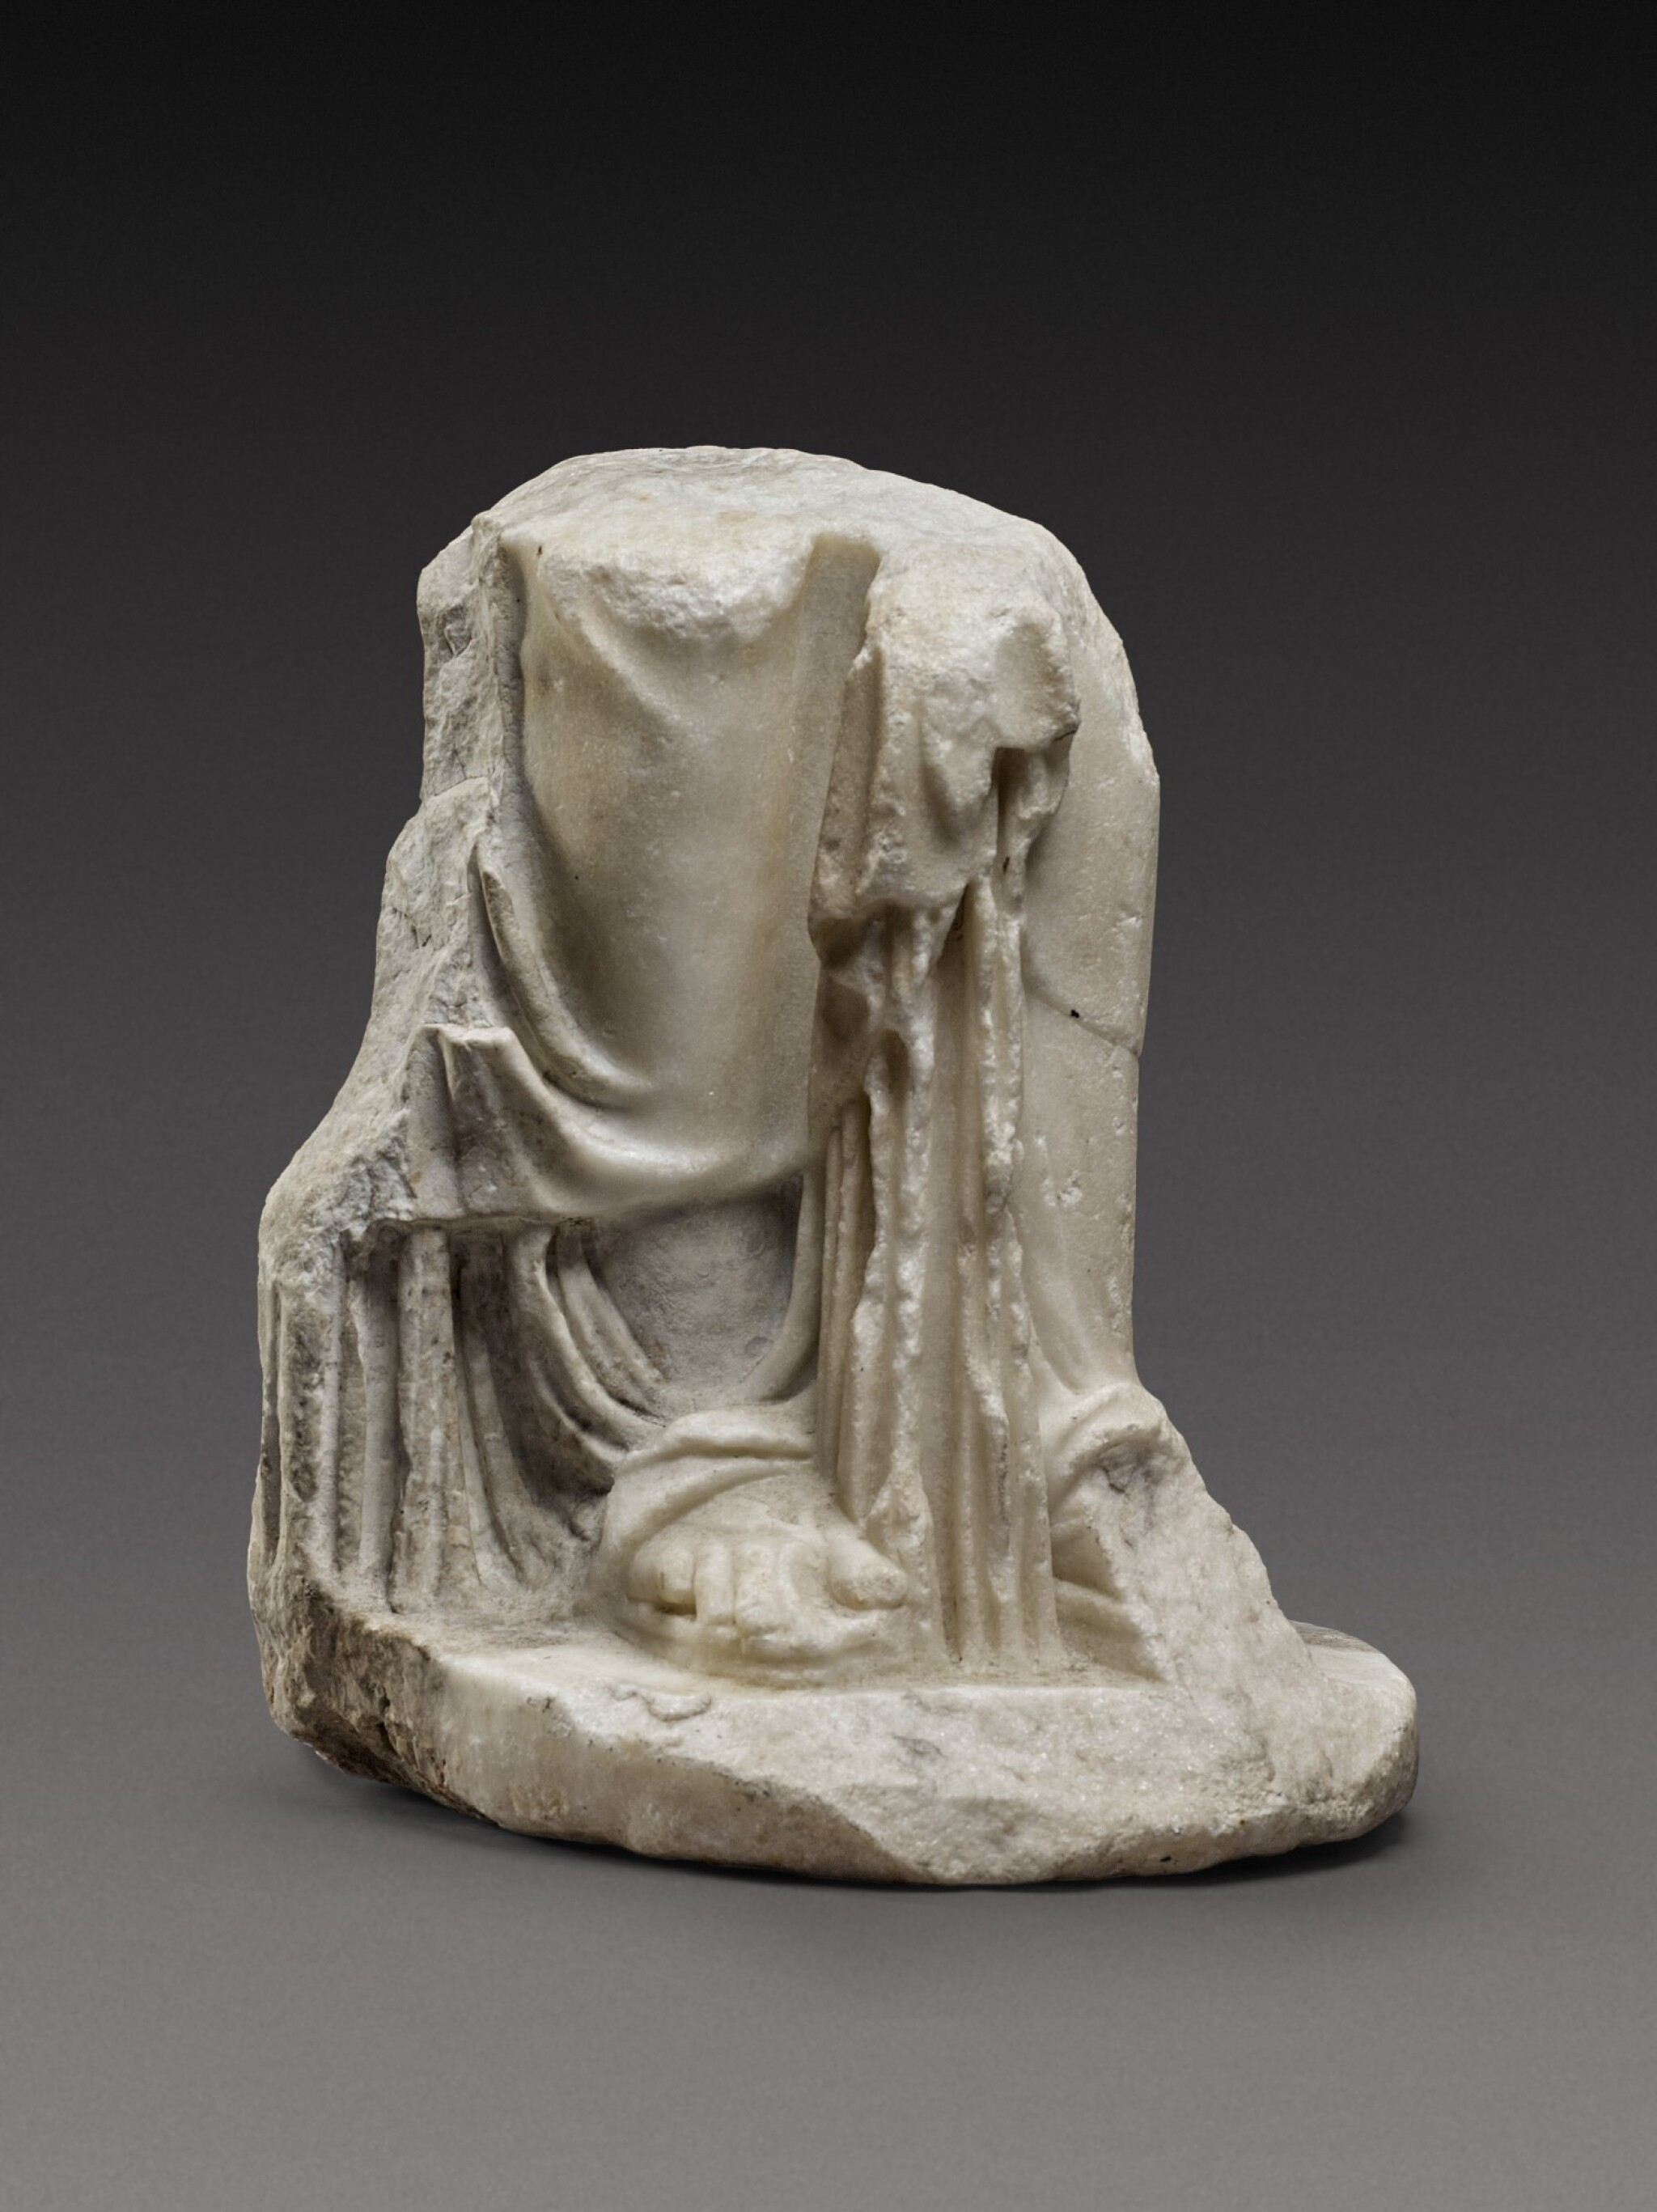 View full screen - View 1 of Lot 88. A Fragmentary Roman Marble Figure of a Woman or Goddess, circa 2nd Century A.D..